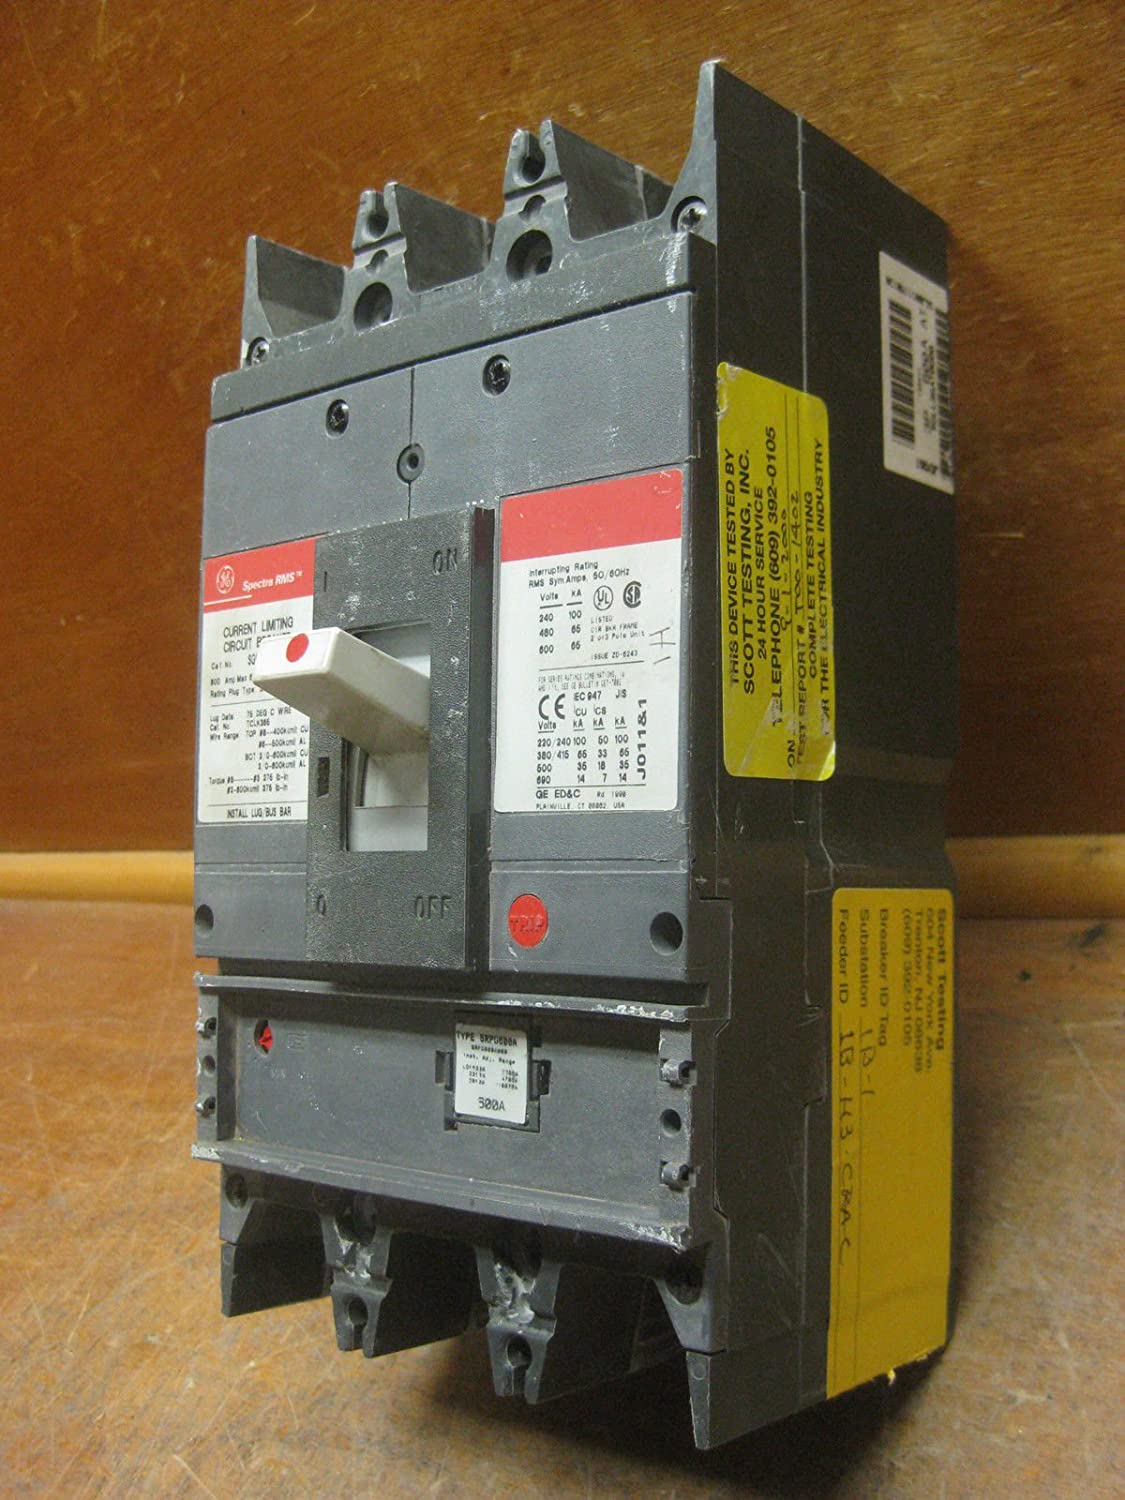 Ge General Electric Sgll36at0600 600a Spectra Breaker Srpg600a600 Arc Fault Circuit Interrupter Afci Industrial Solutions 600v 600 Amp Scientific